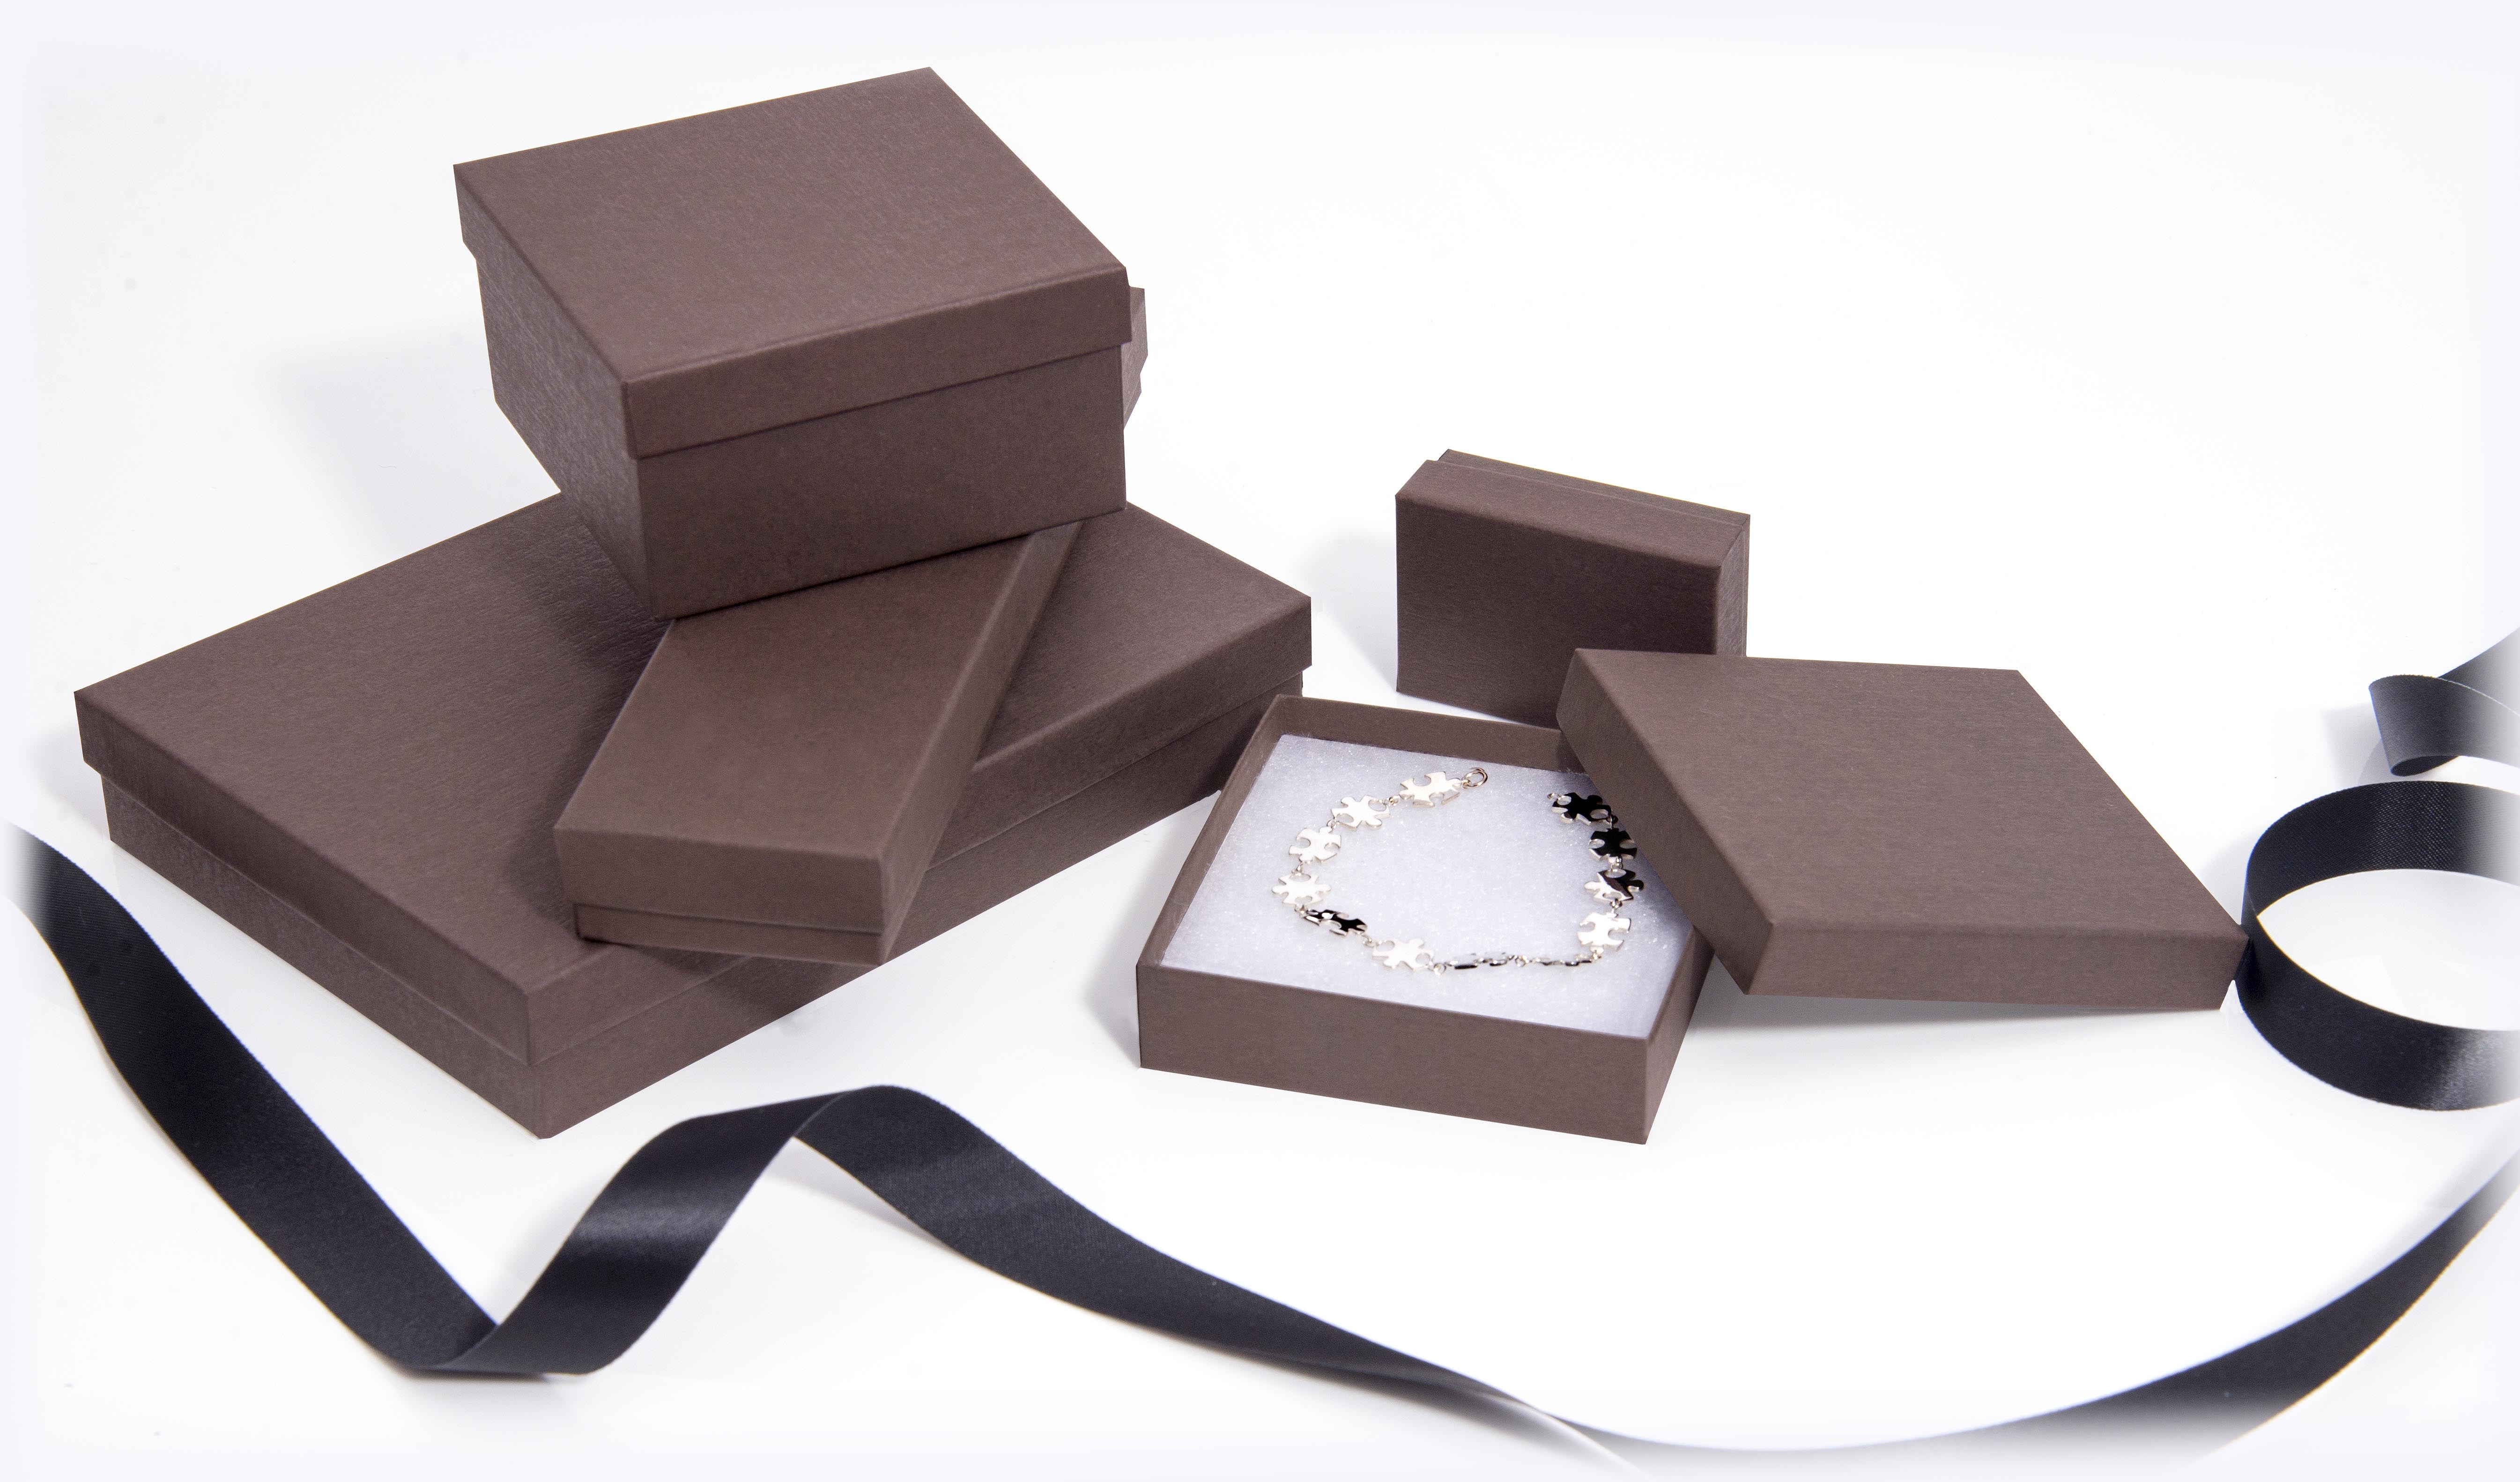 Chocolate Gift Boxes Packaging Uk : Kraft chocolate jewellery boxes gift